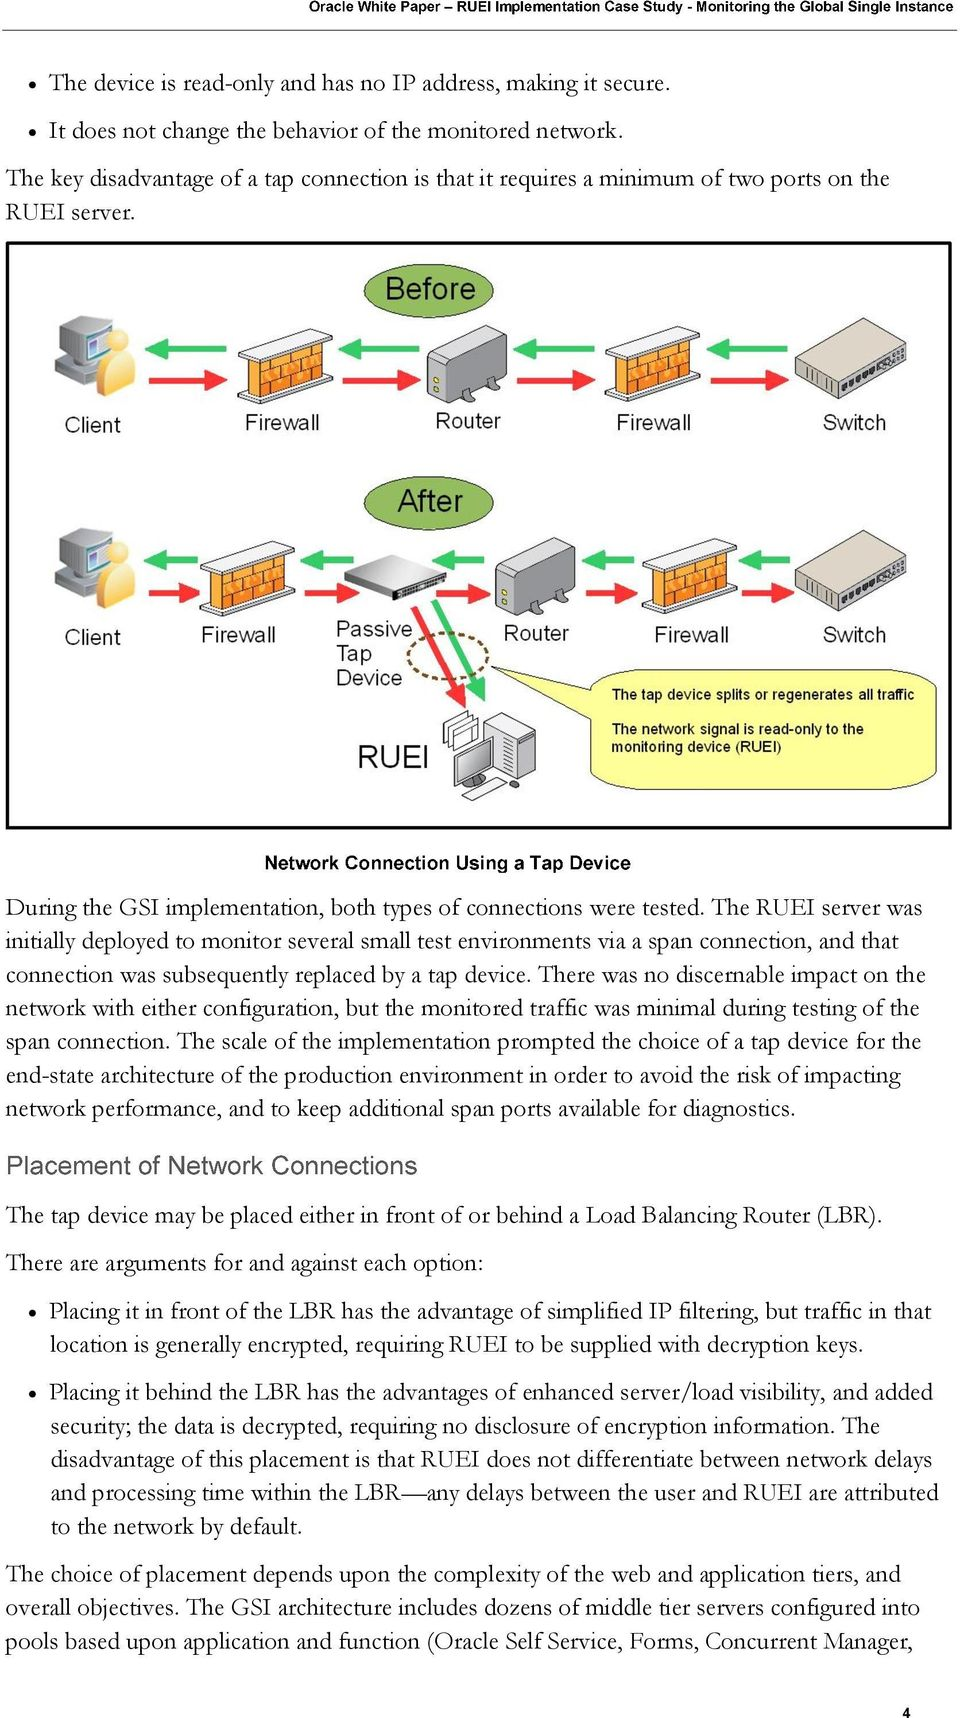 The RUEI server was initially deployed to monitor several small test environments via a span connection, and that connection was subsequently replaced by a tap device.